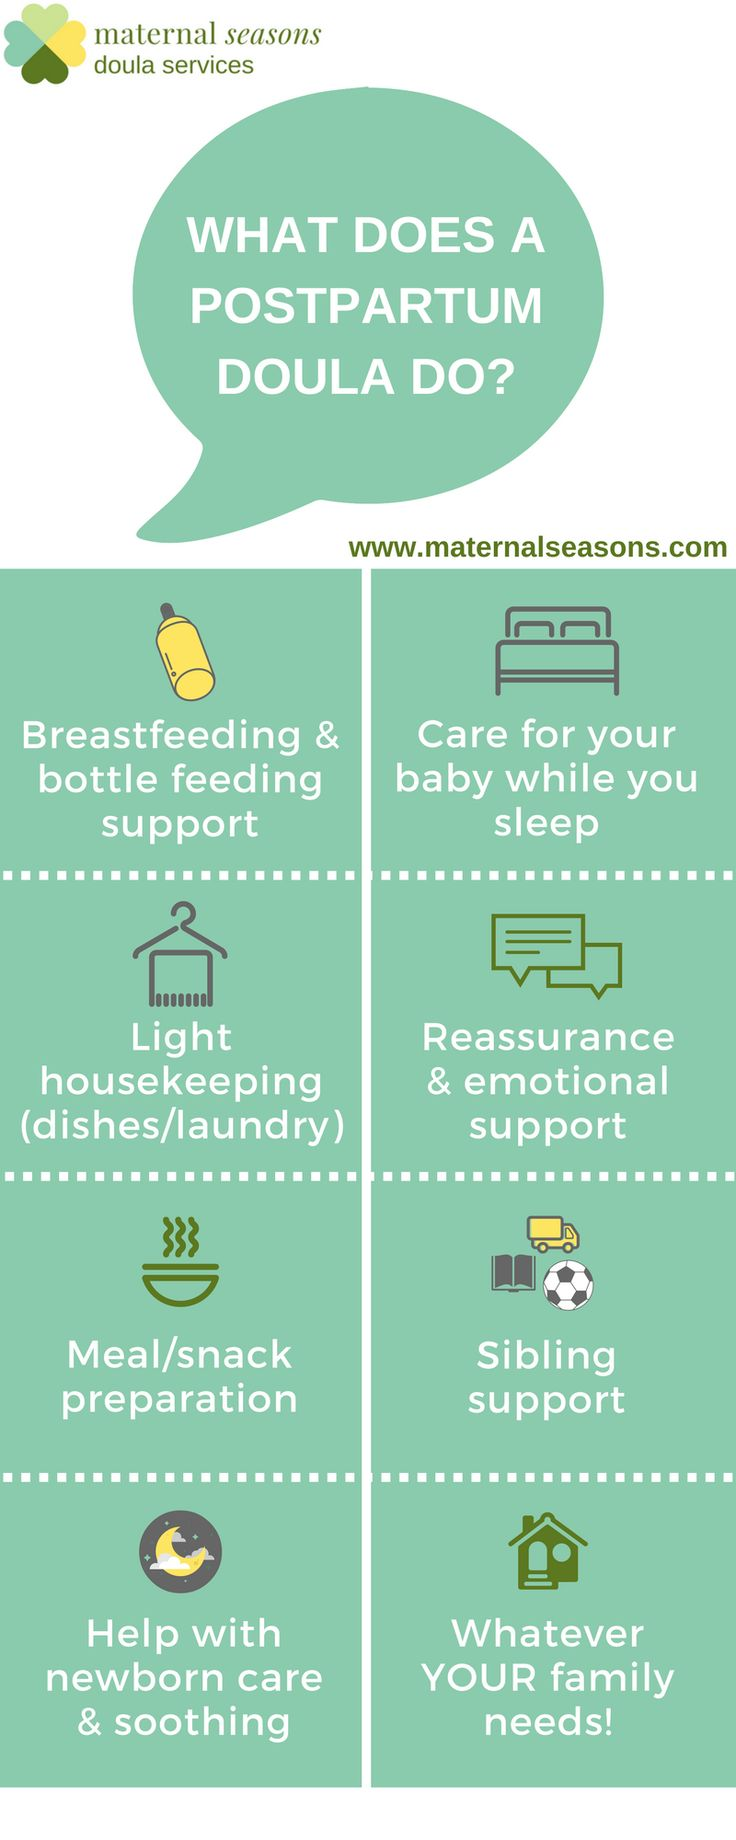 Great summary of what a Postpartum Doula does!